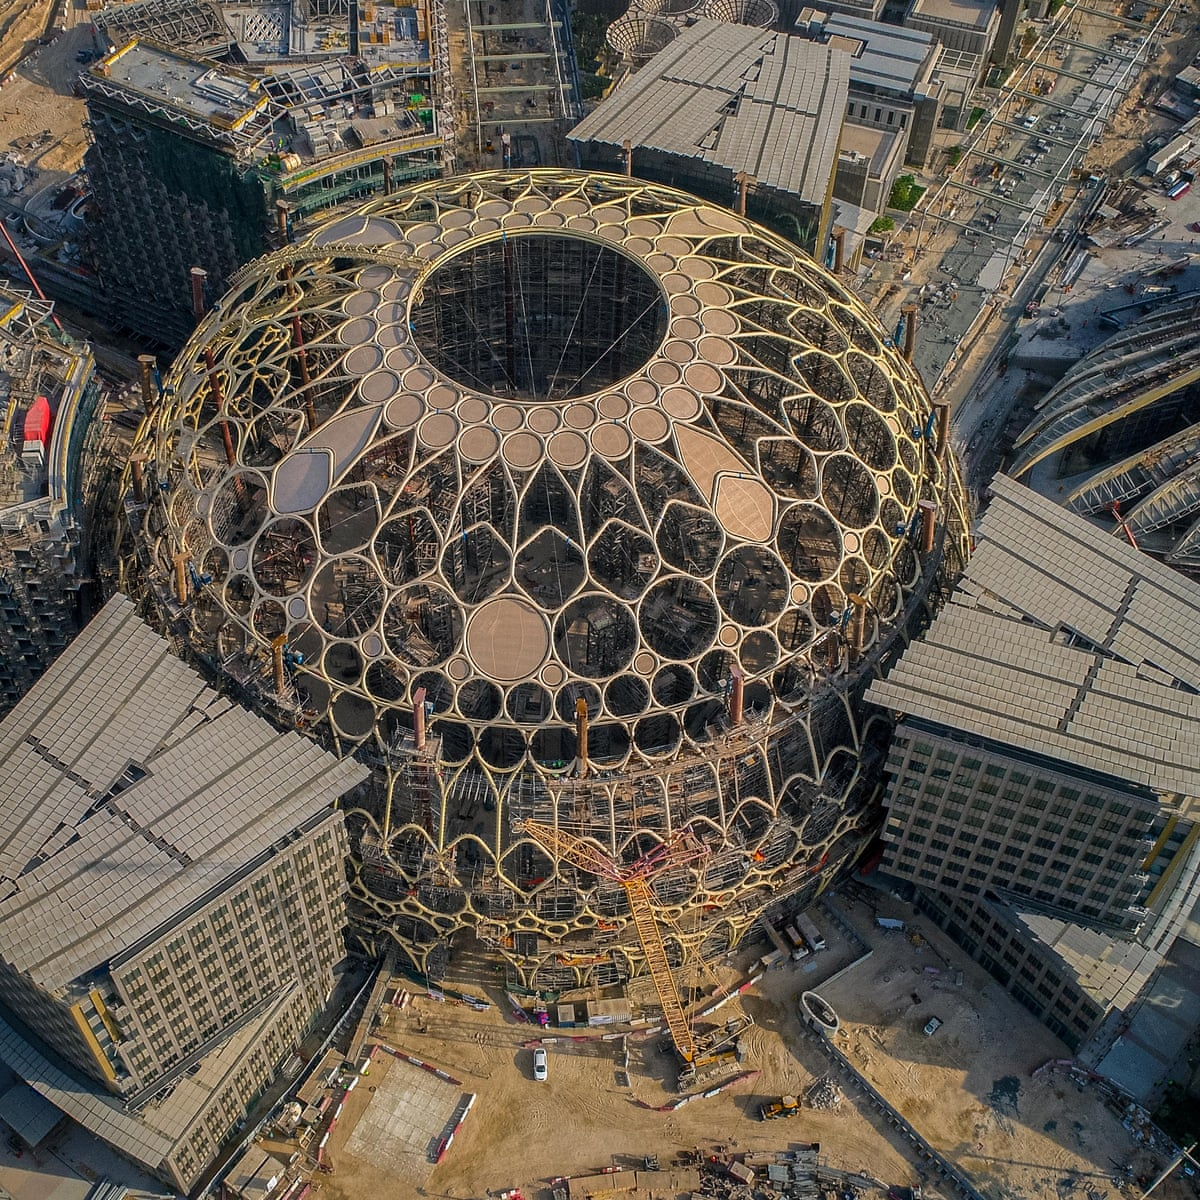 Workers At Dubai S Expo 2020 Likely To Have Suffered Dangerous Heat Stress Global Development The Guardian